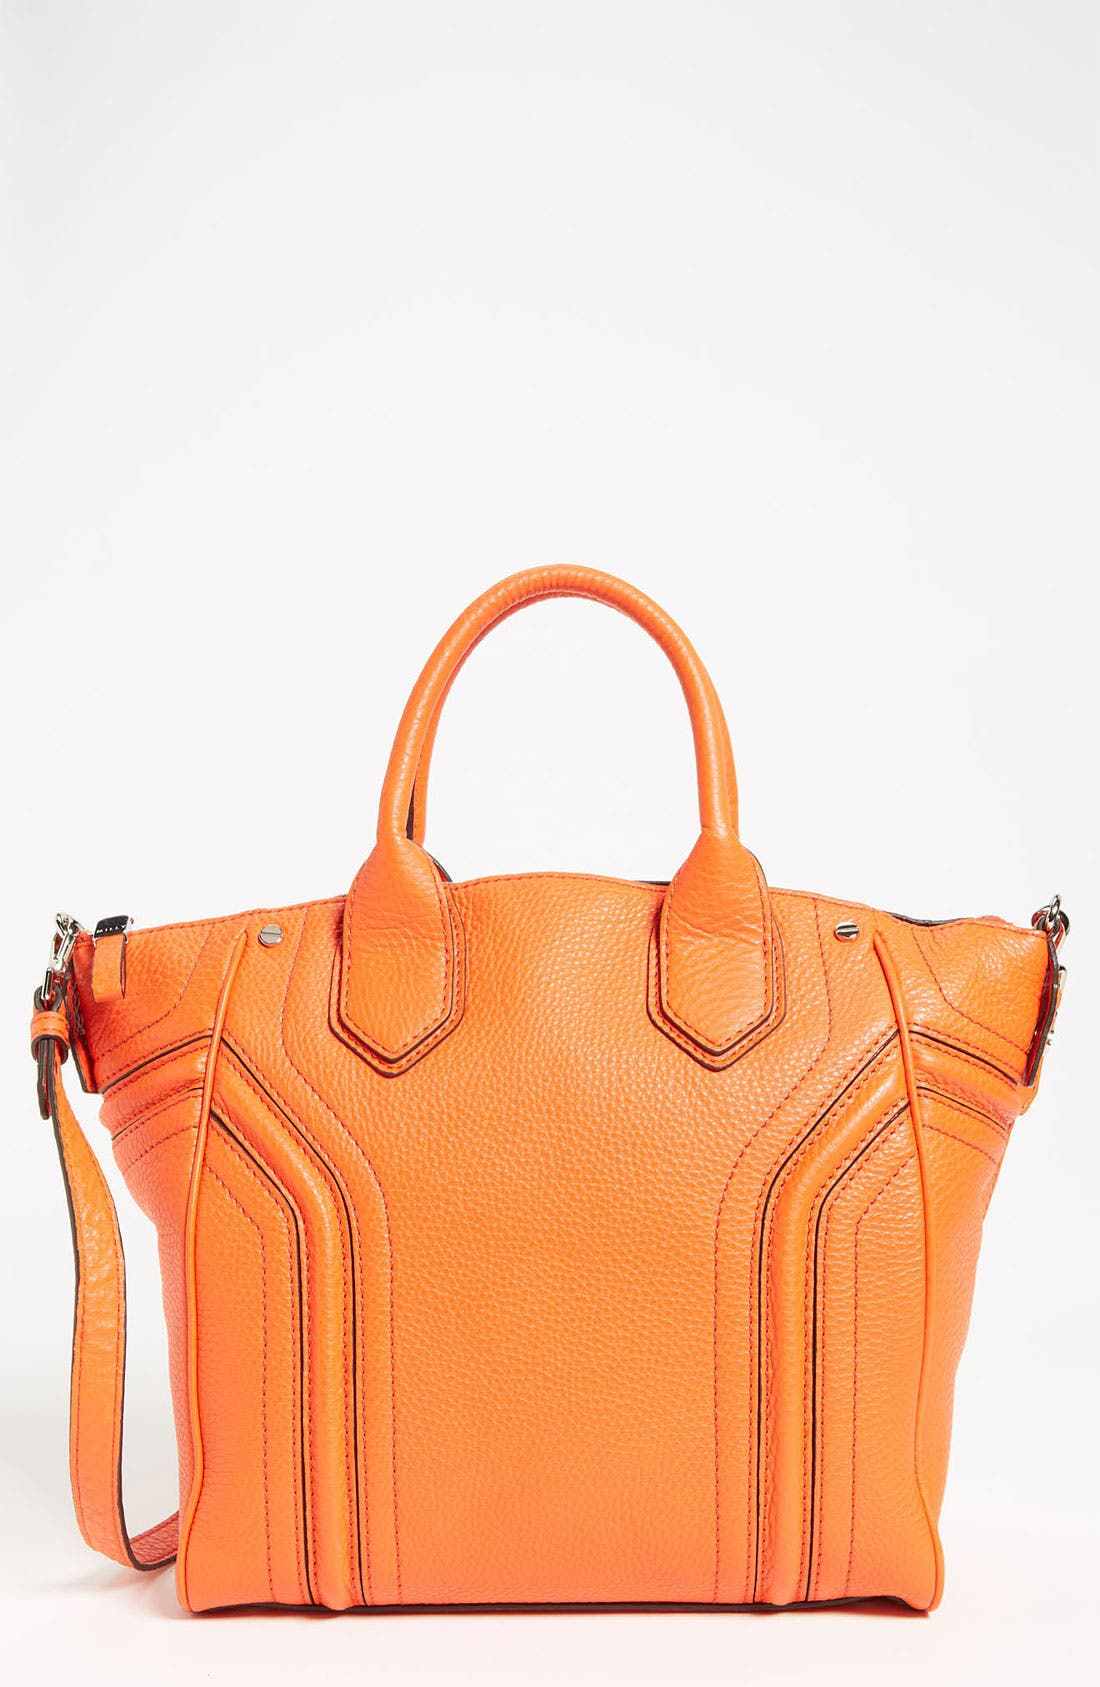 Main Image - Milly 'Zoey' Tote